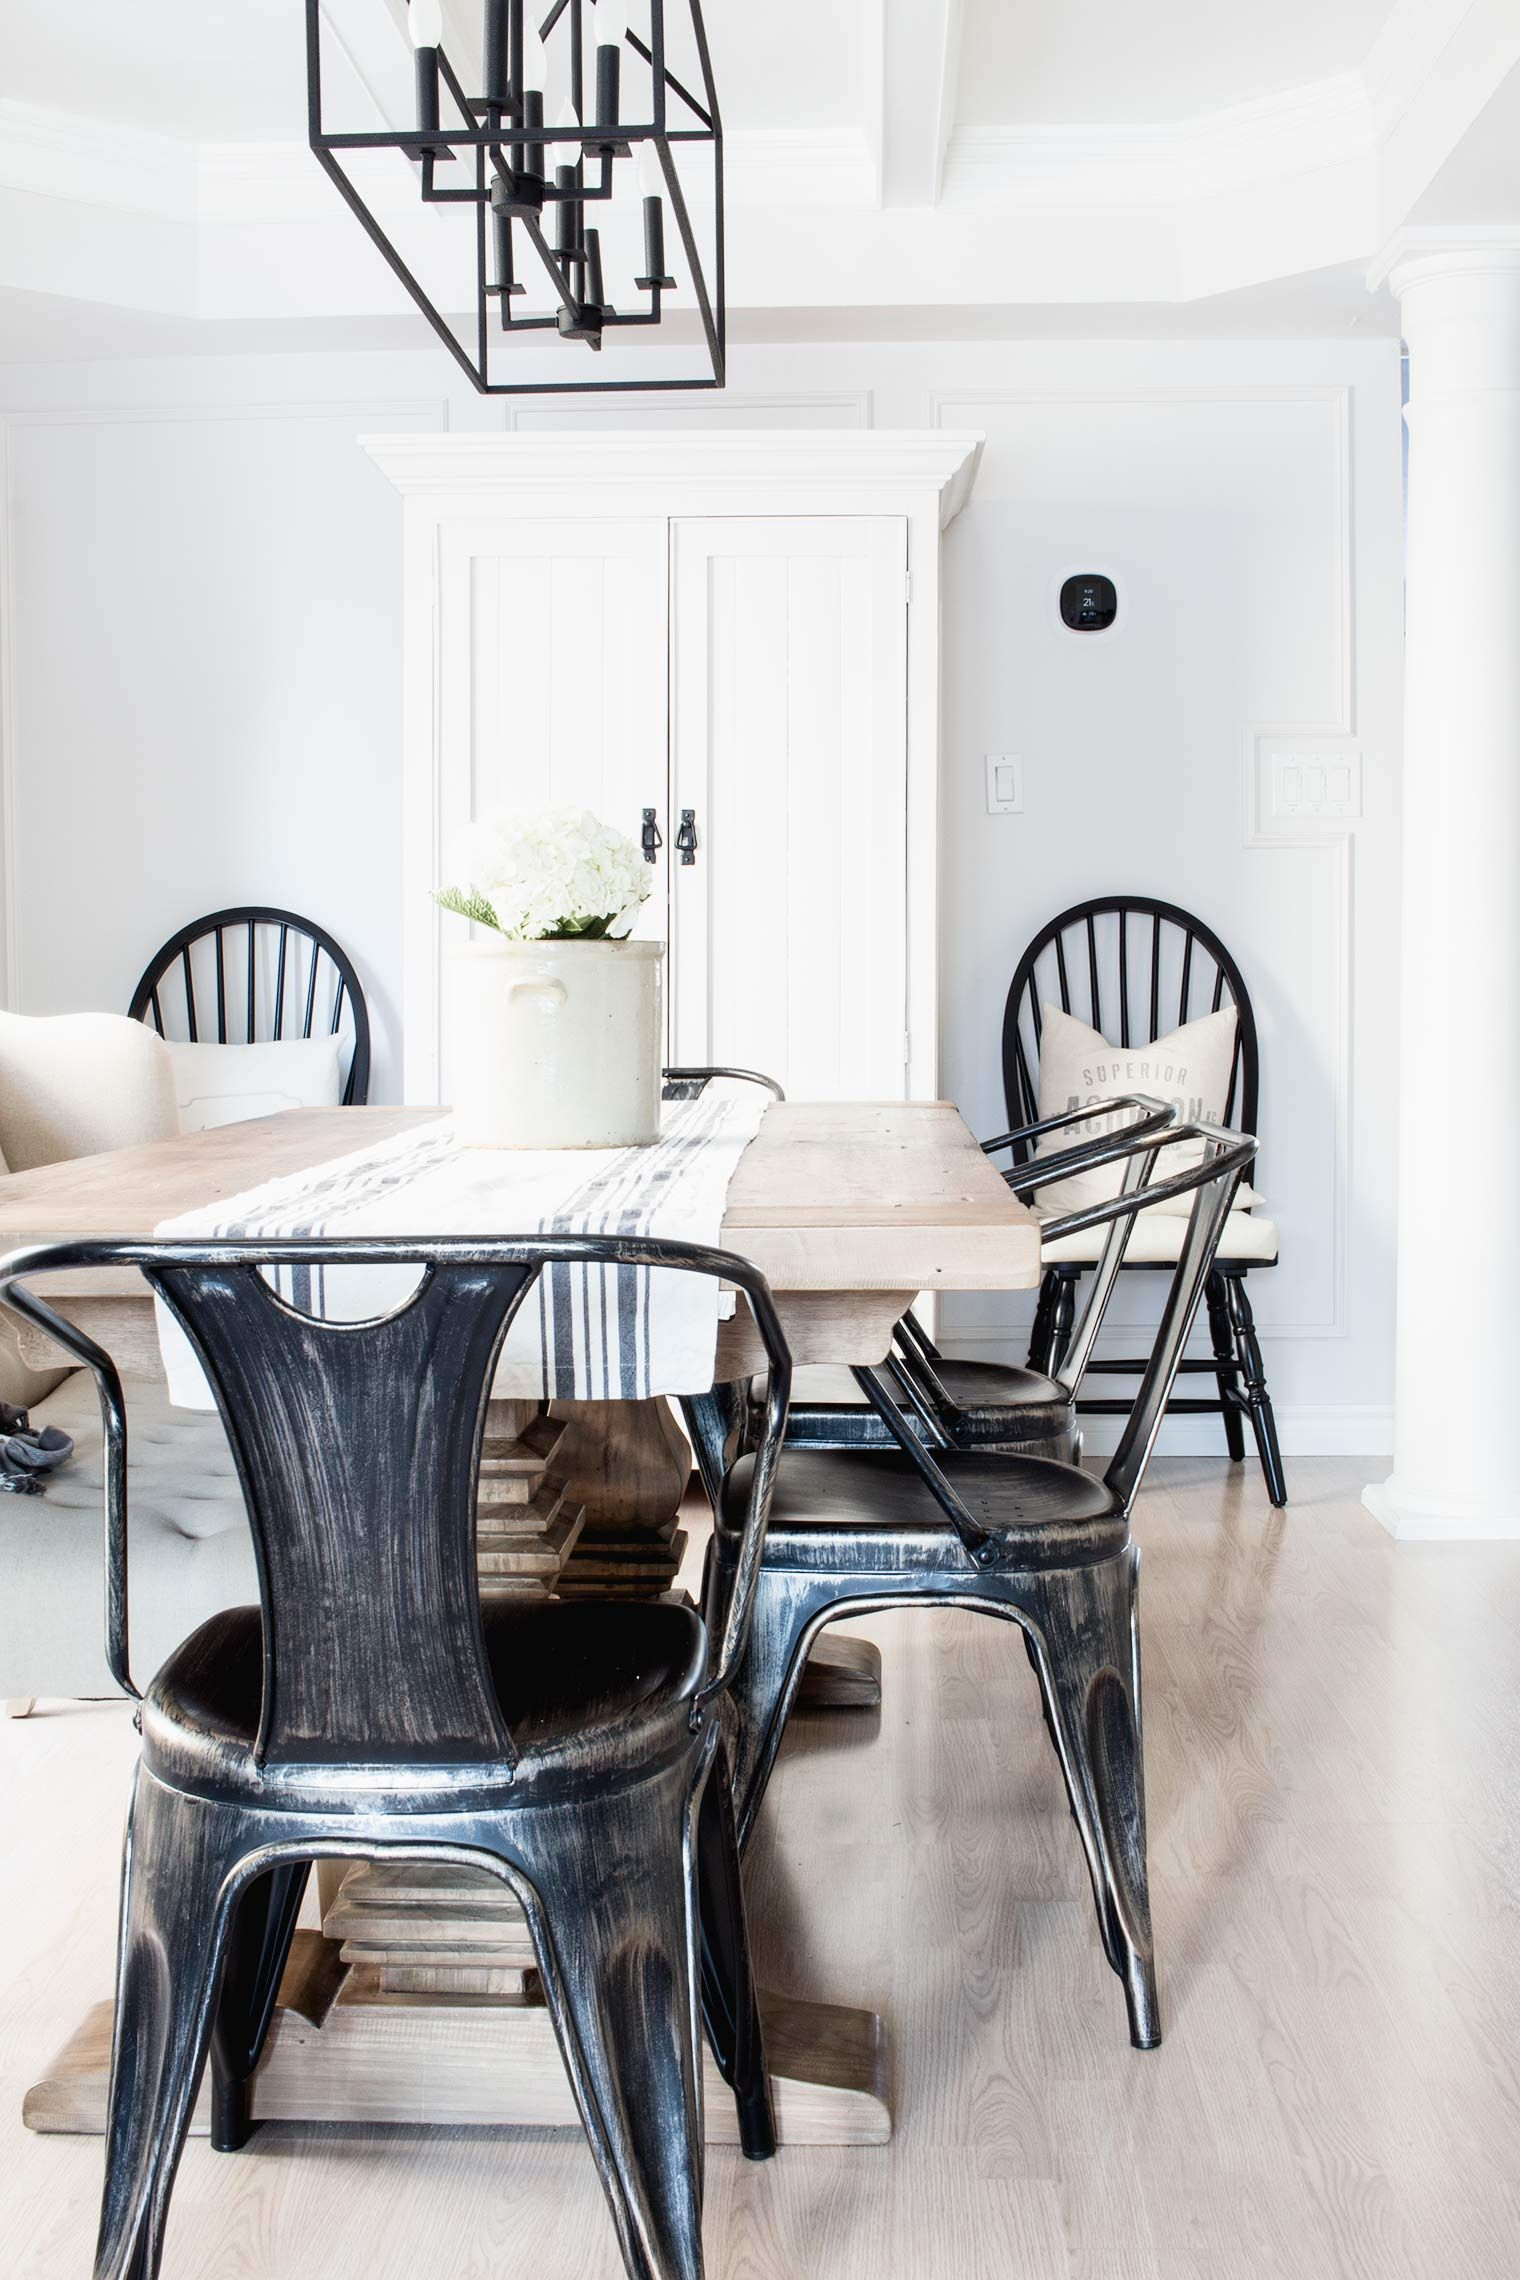 Simple Farmhouse Style Dining Room With White Walls And Cabinet Wood Table Black Chairs